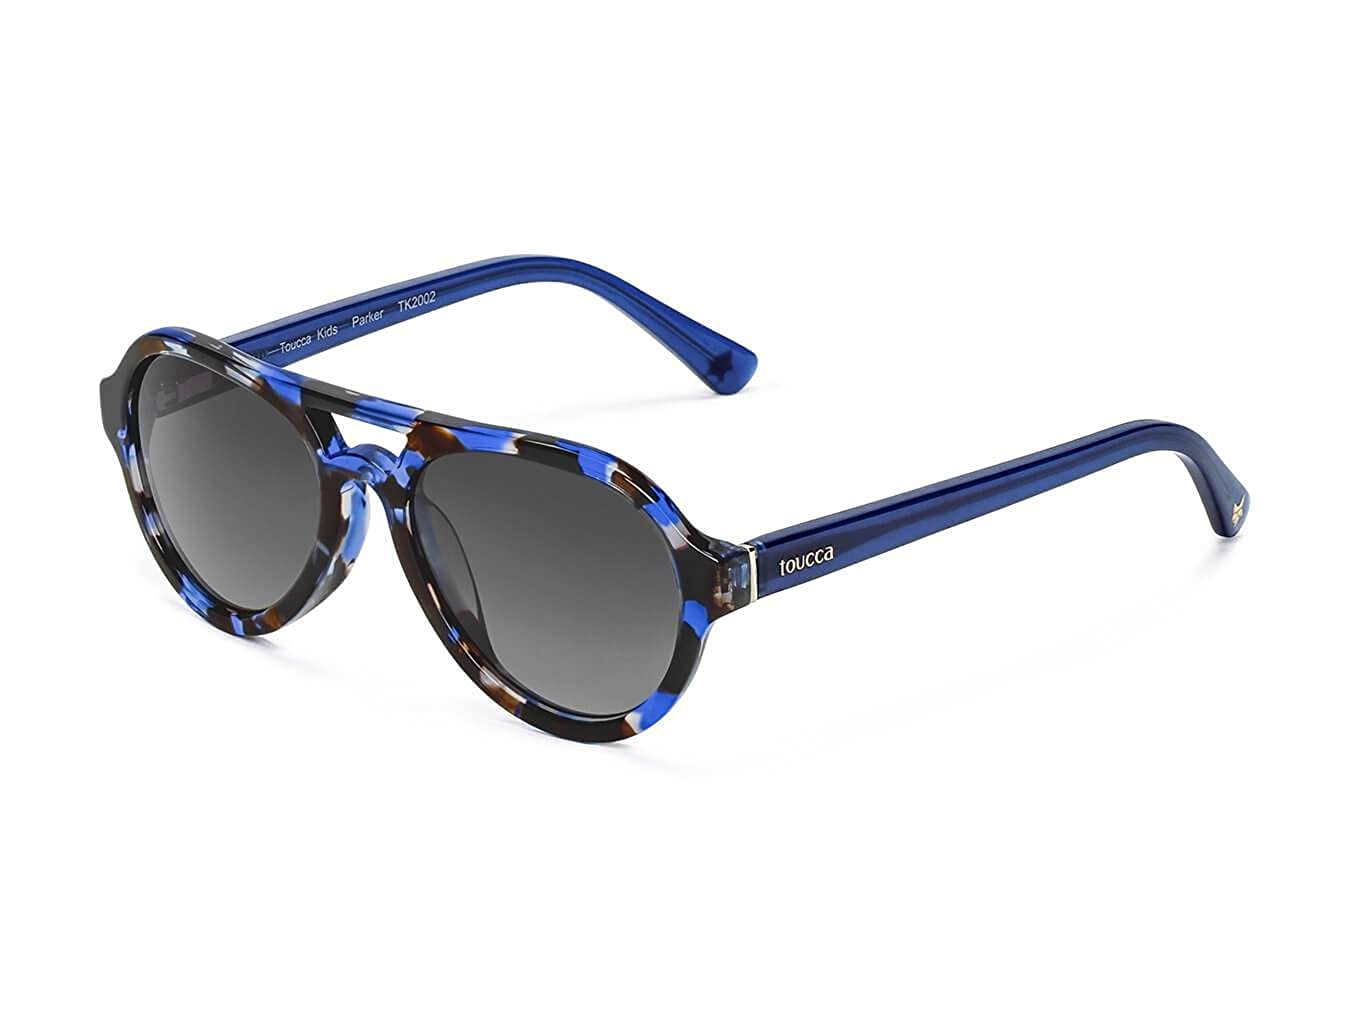 toucca kids: Polarized Aviator Sunglasses, Unisex for Toddlers & Children Ages 2-6 | Durable, Comfortable & Stylish (Includes Cases) Blue Tortoise